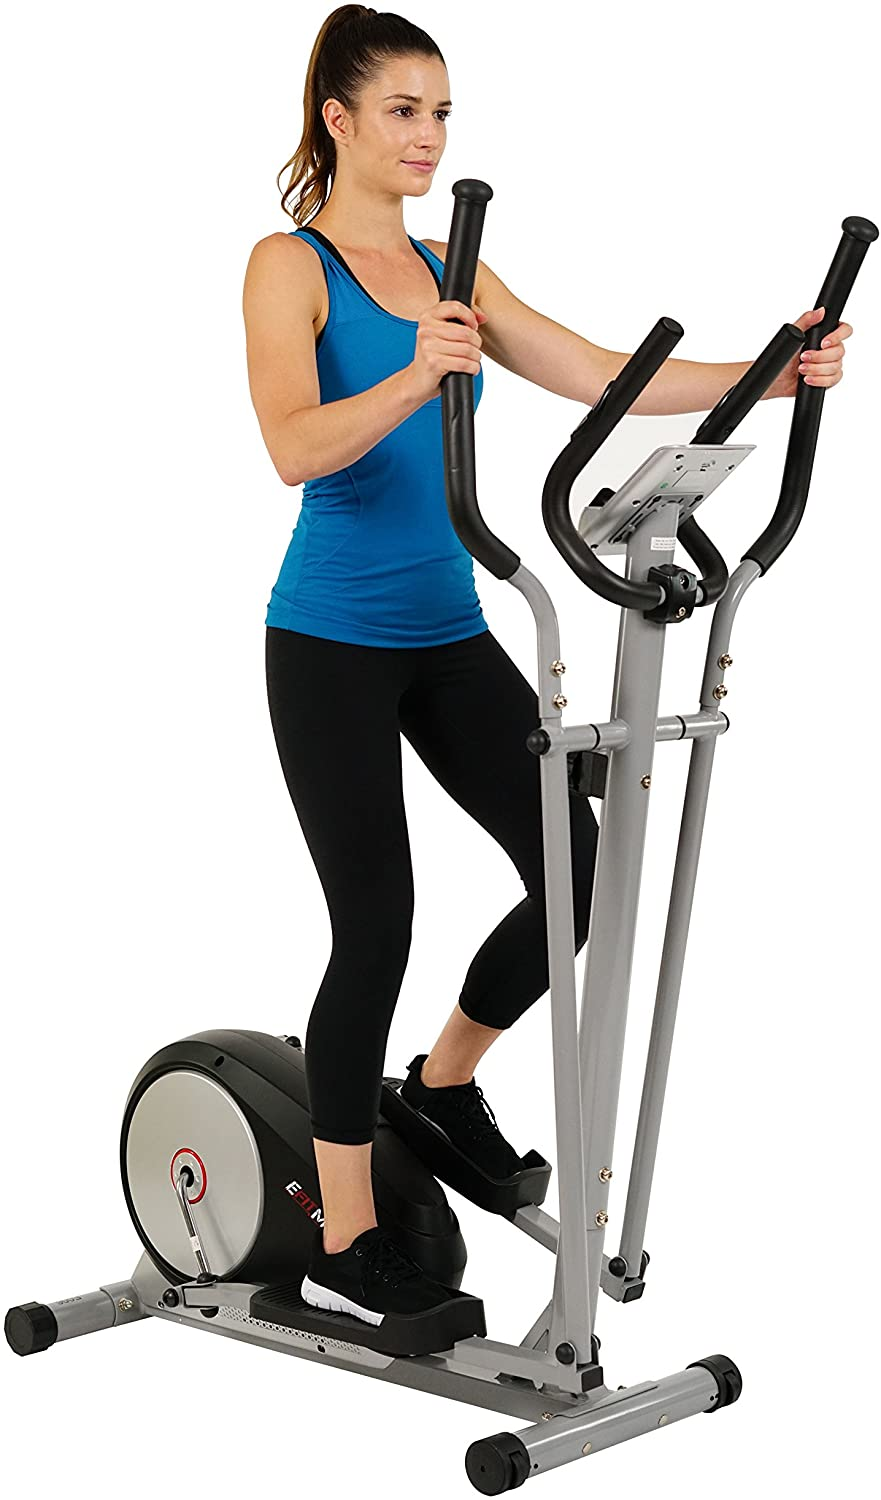 EFITMENT Magnetic Elliptical Machine Trainer w/LCD Monitor and Pulse Rate Grips